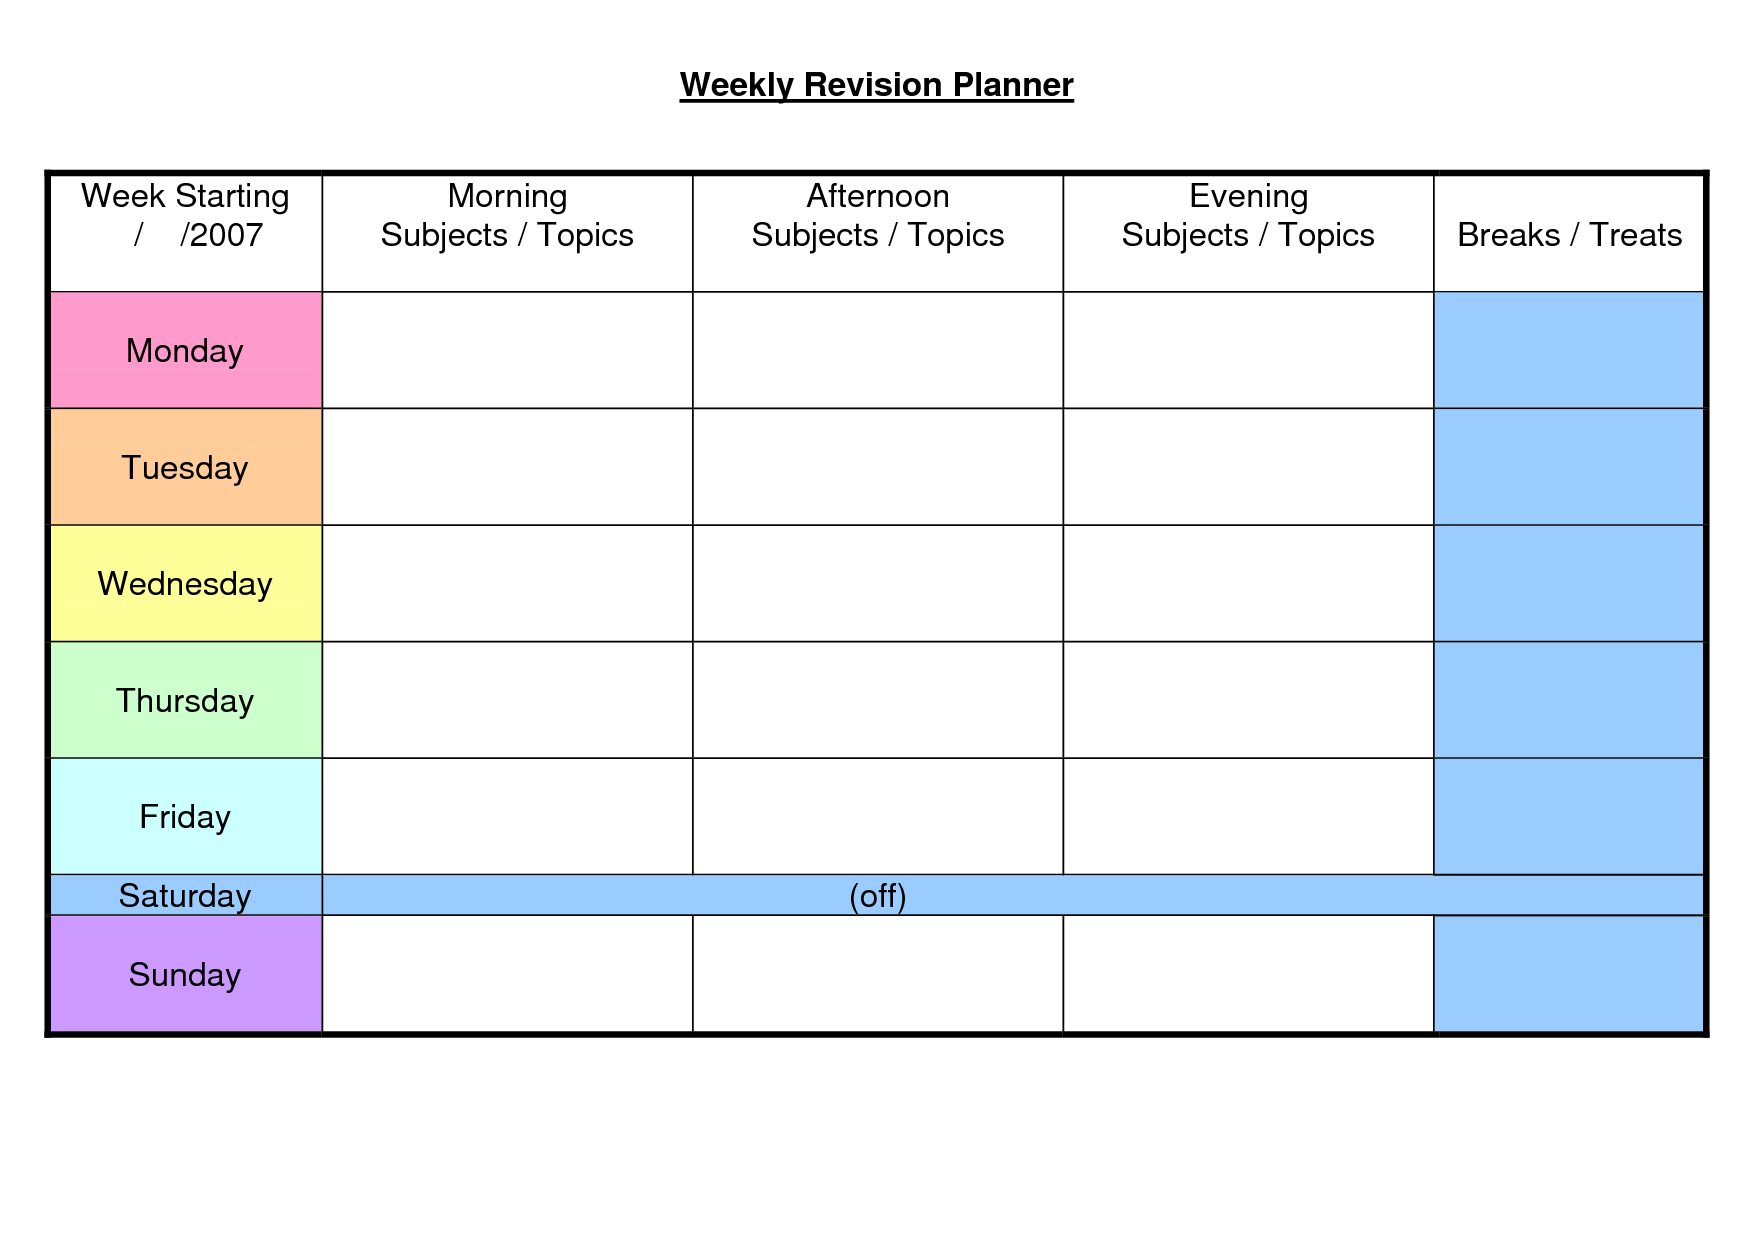 37+ Weekly Planner Template - Schedule, Meal & Others - Word, Excel! within Weekly Planner Template For Students